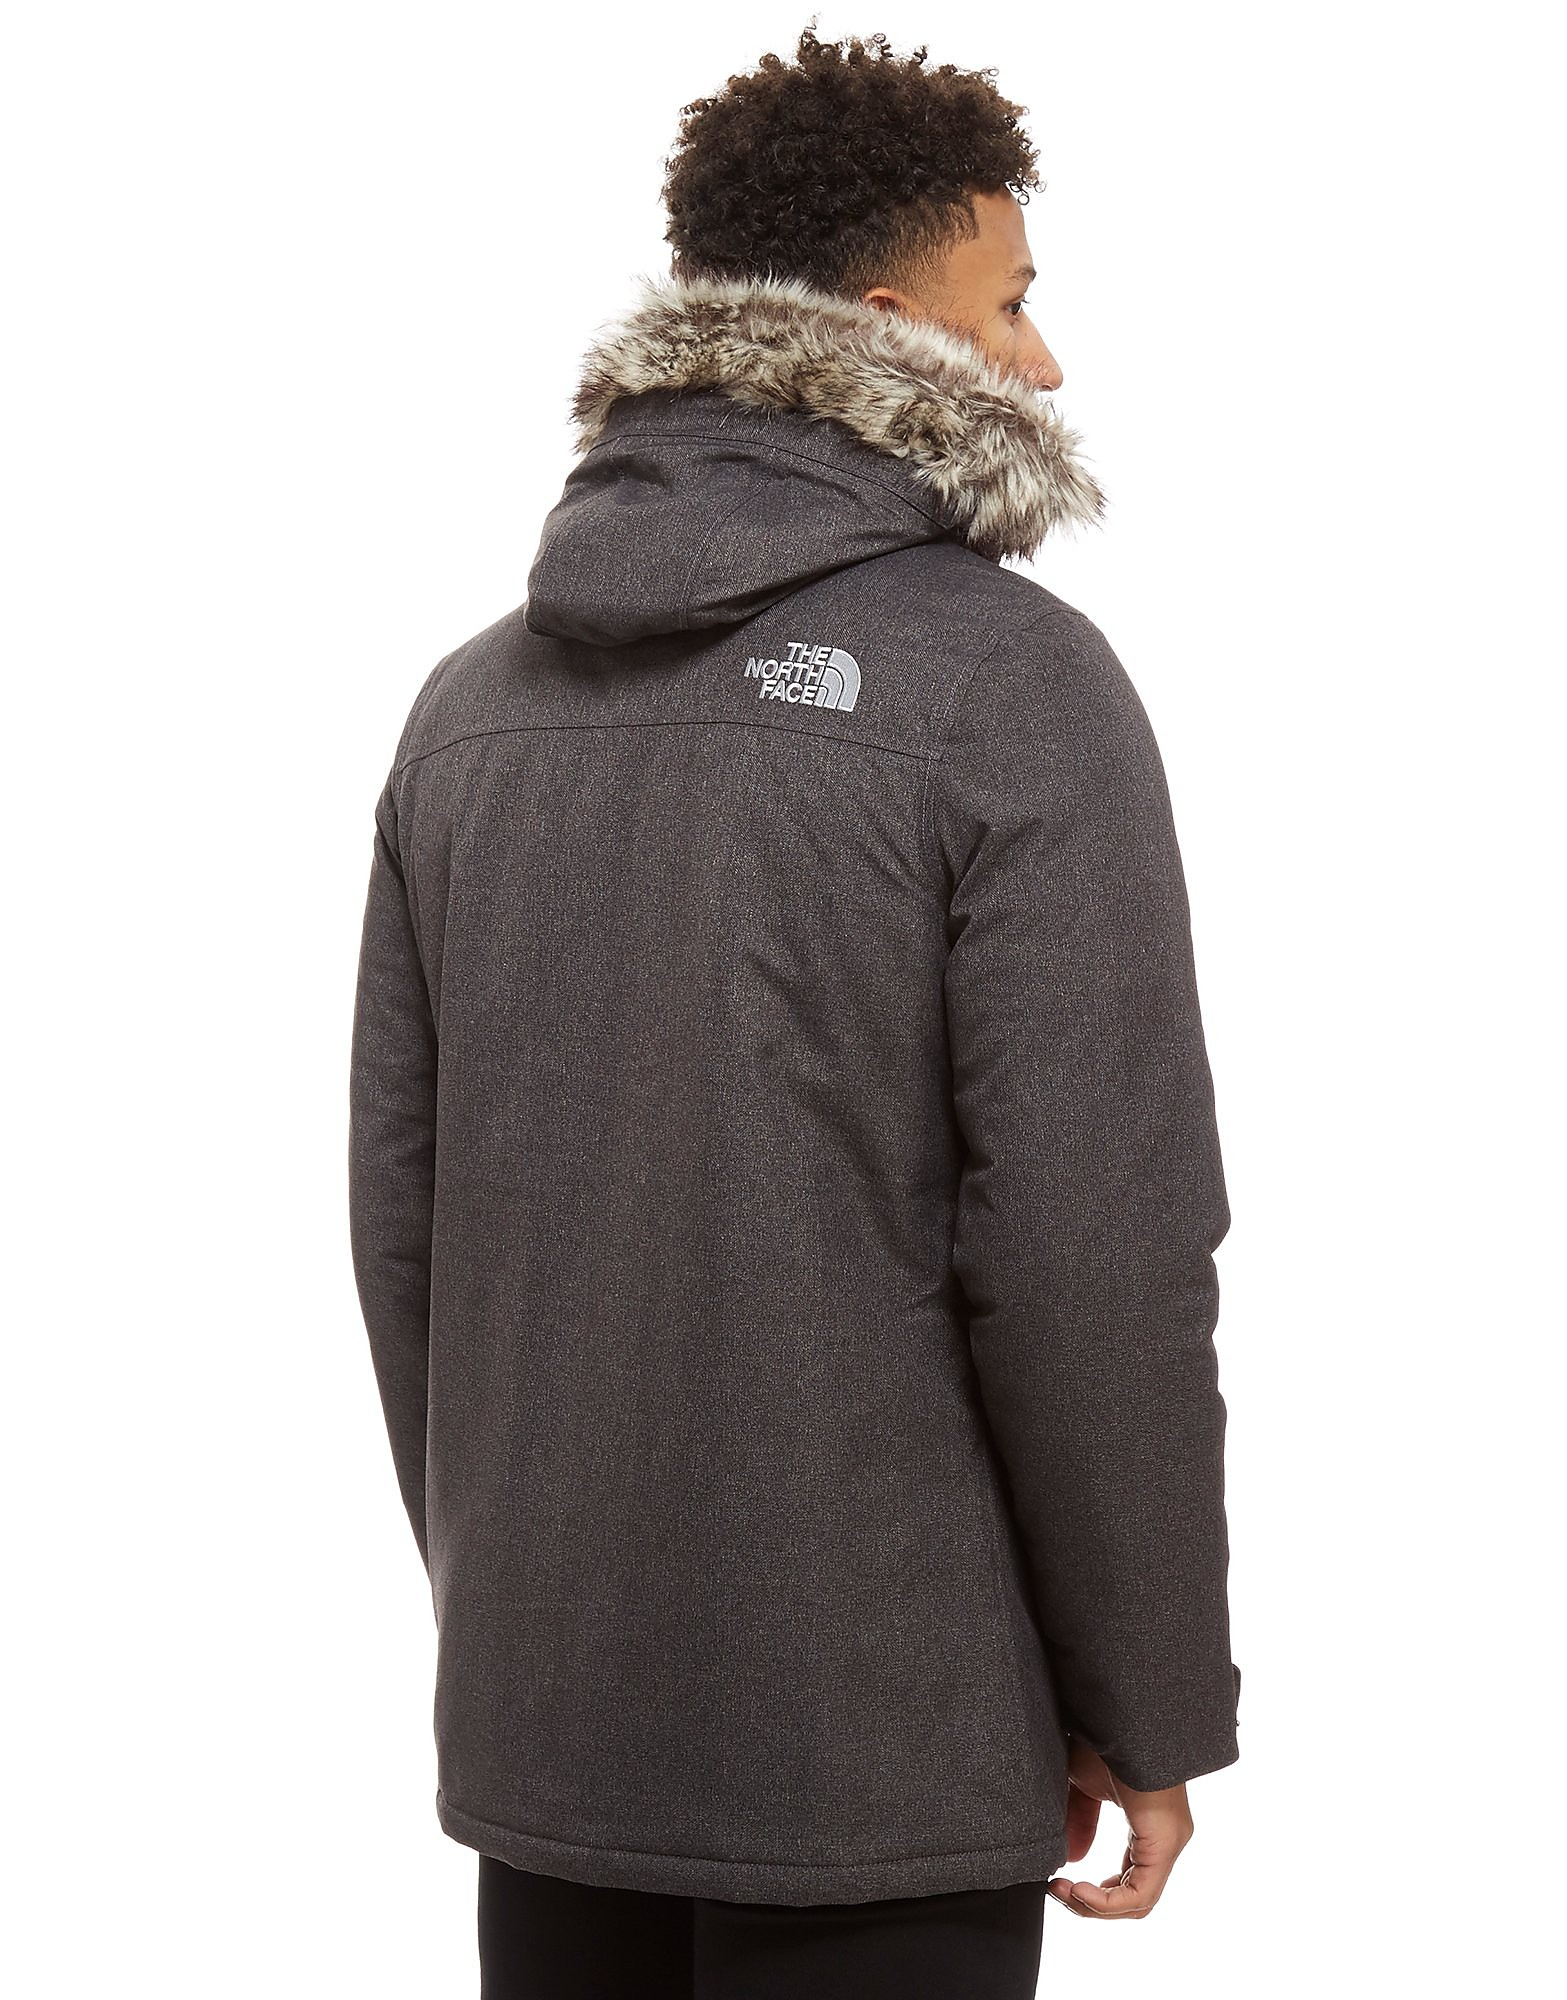 The North Face Zaneck Parka Jacket